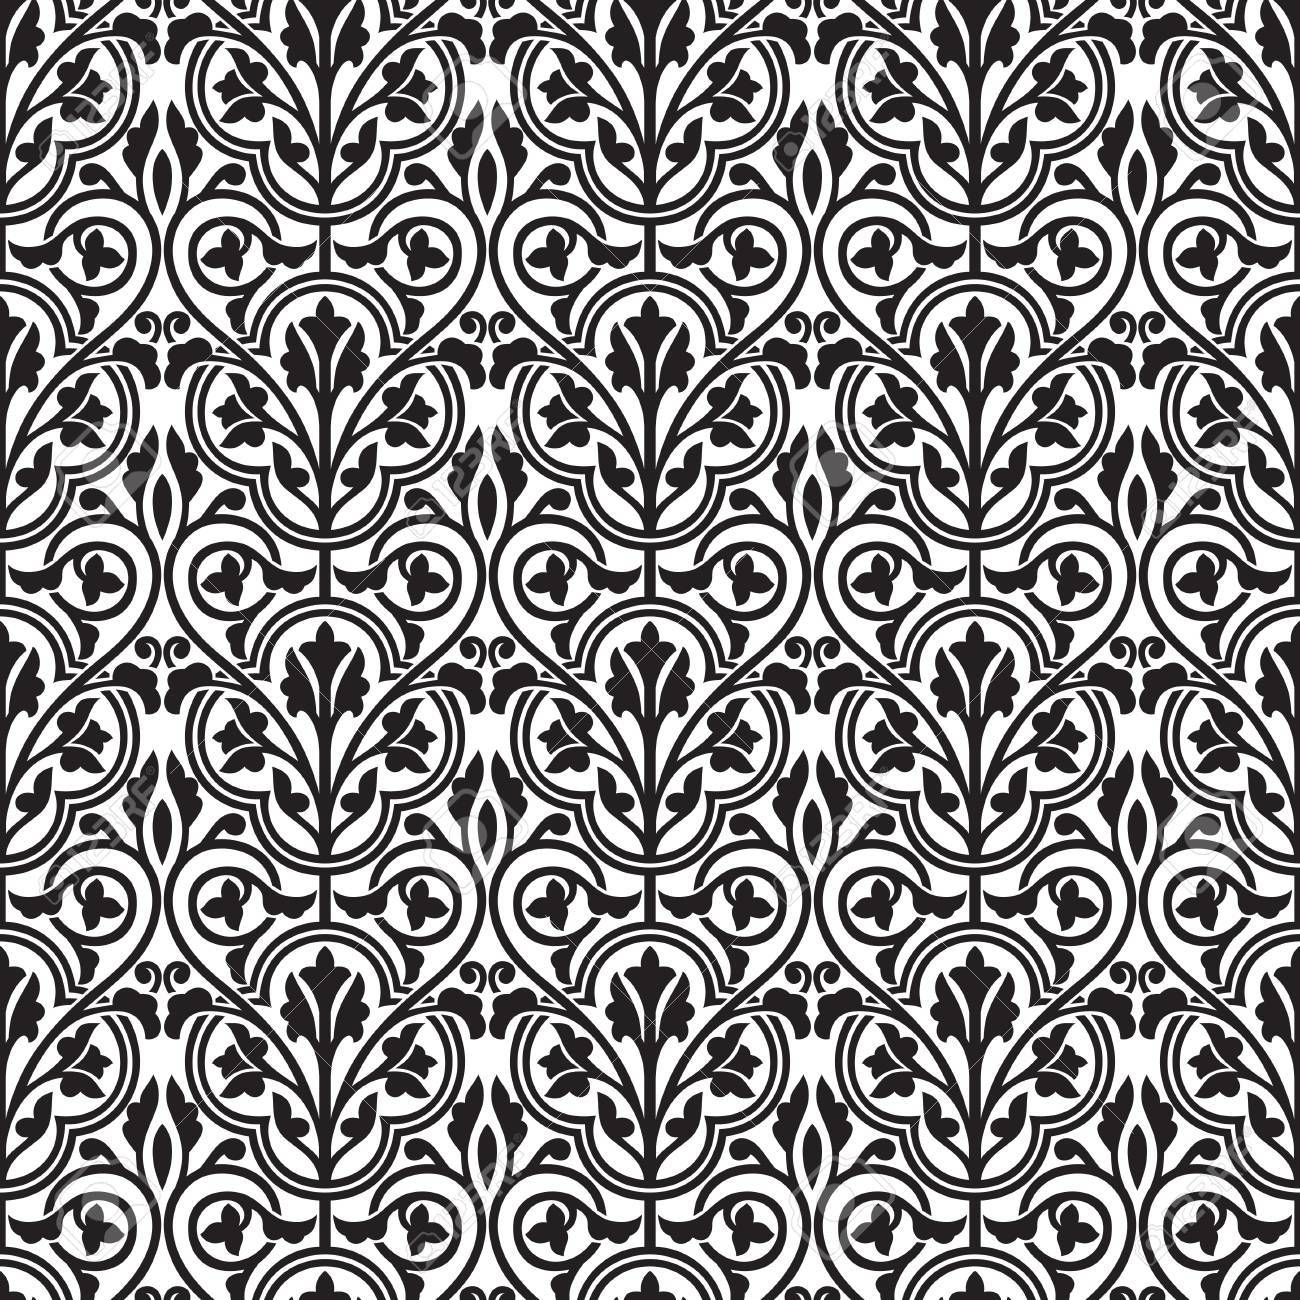 Damask Seamless Black And White Floral Wallpaper Royalty Free